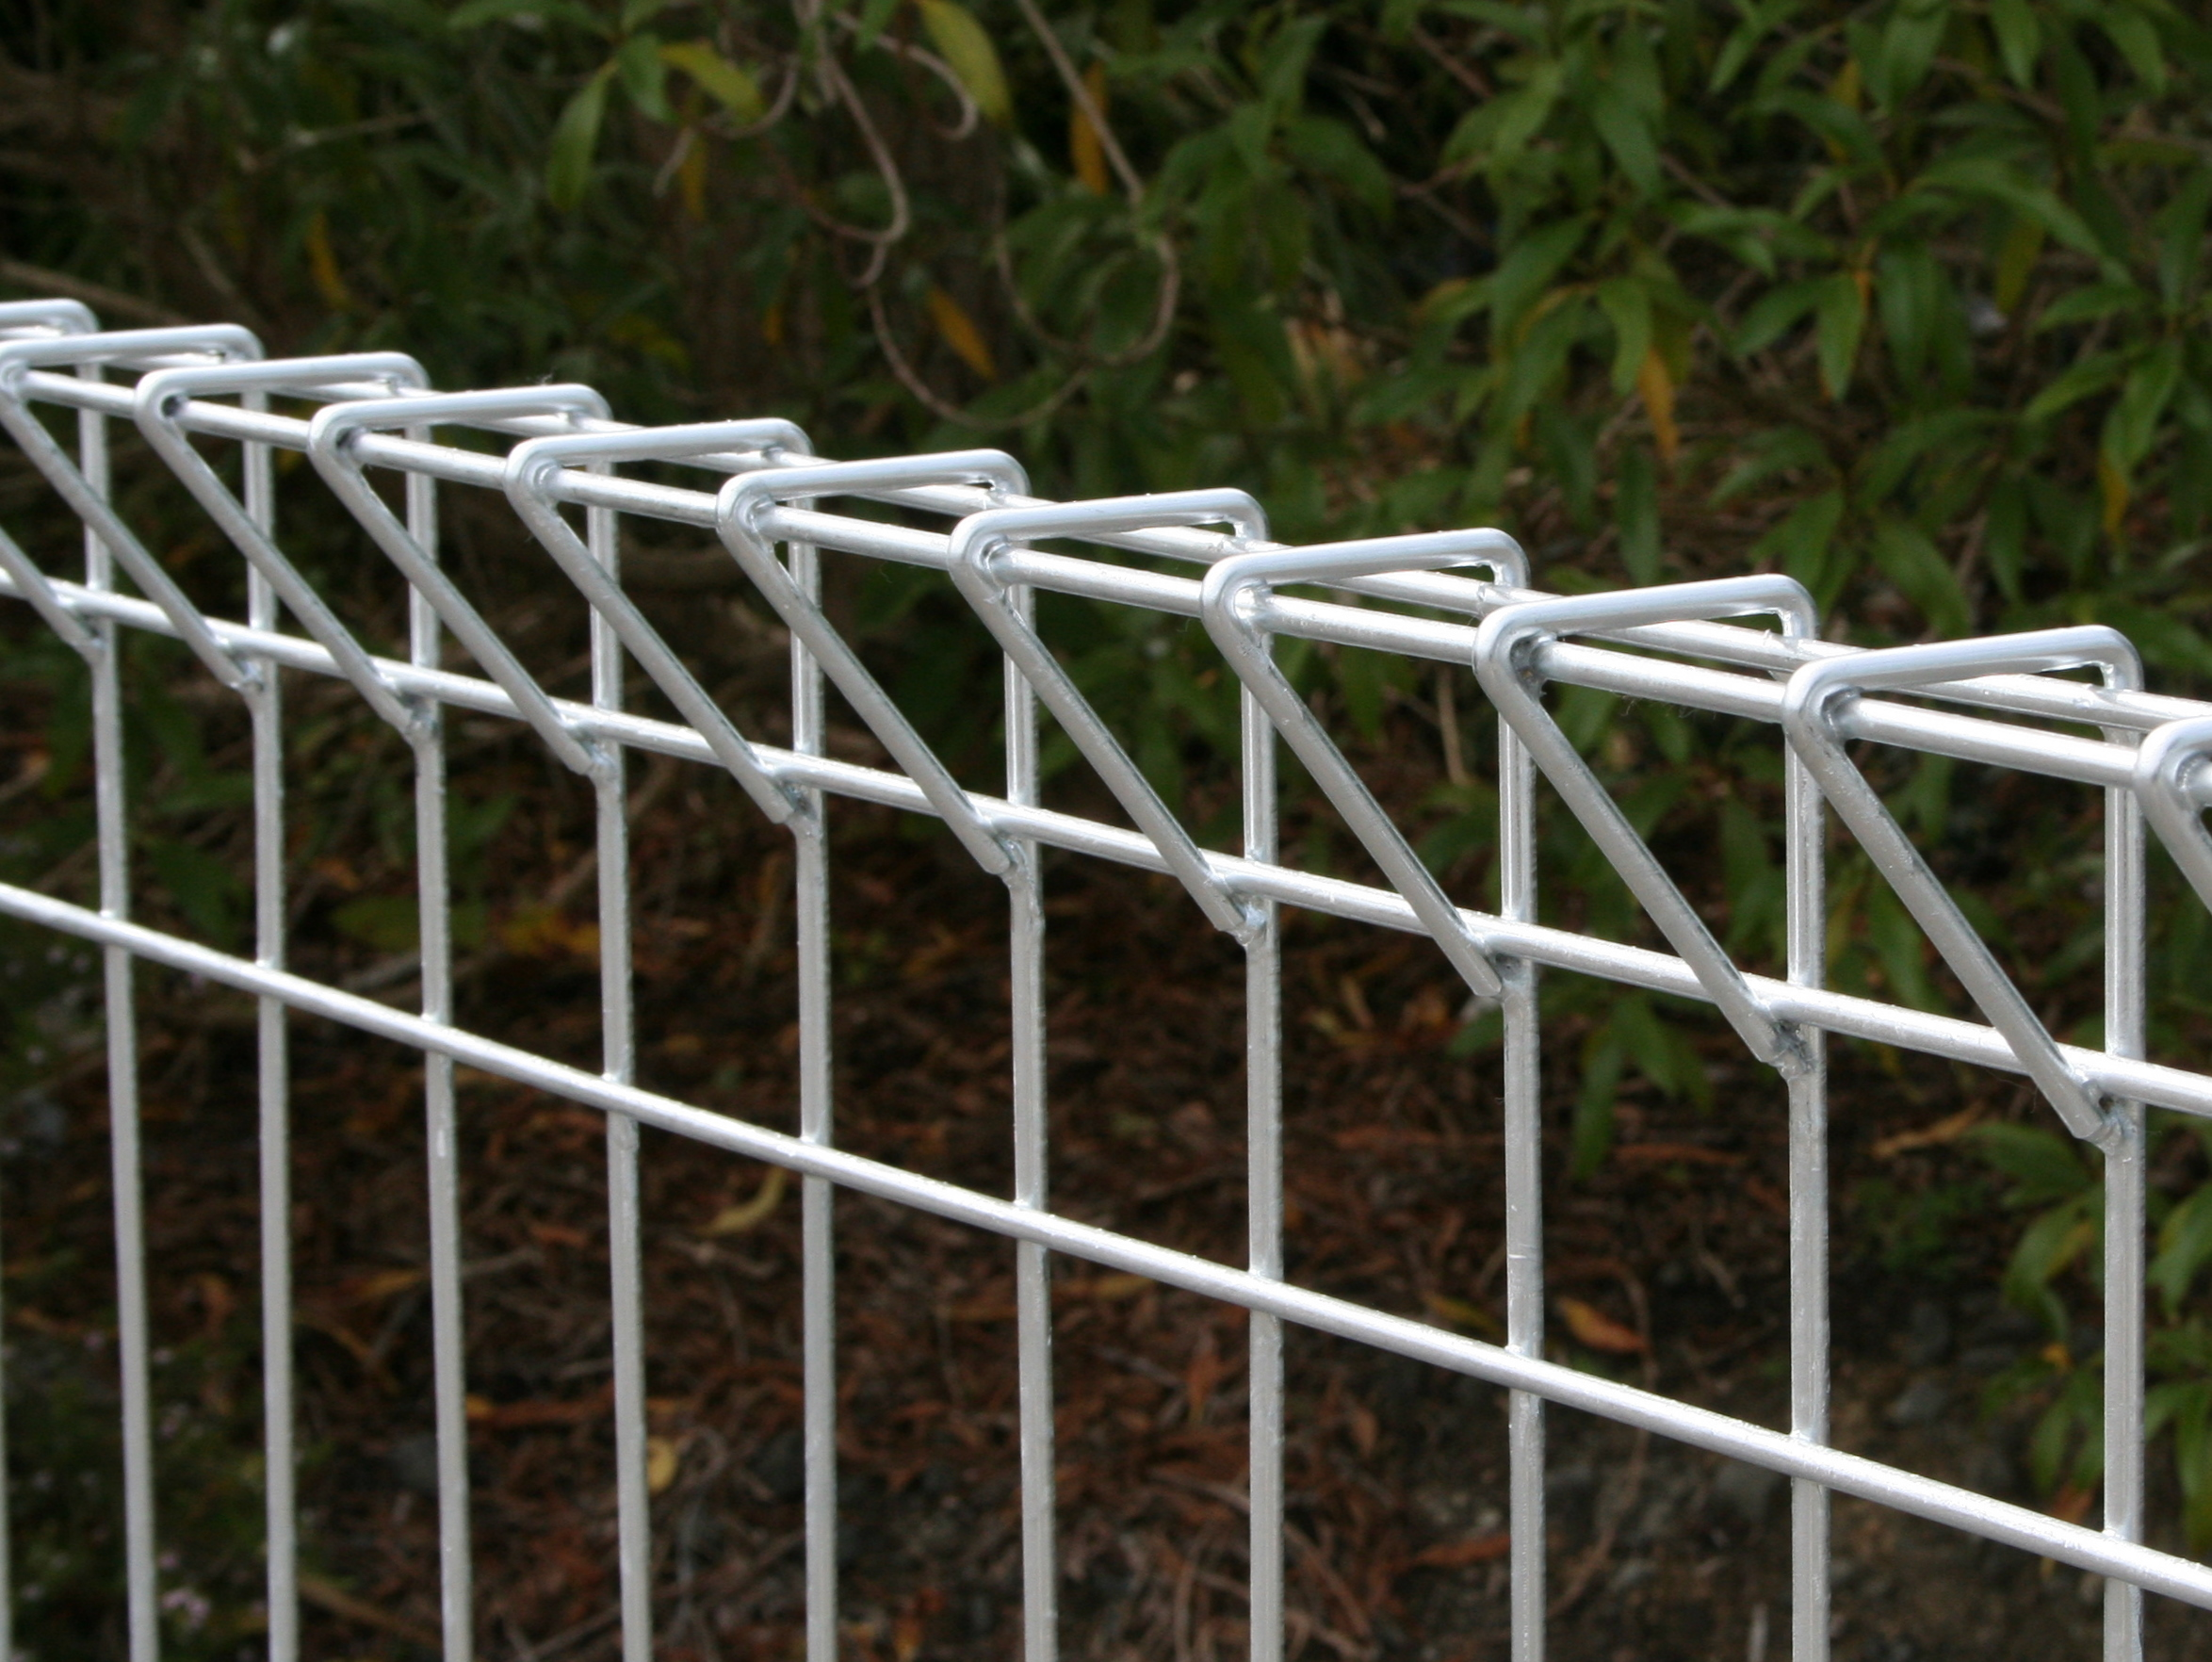 TUOFANG produce welded BRC fencing